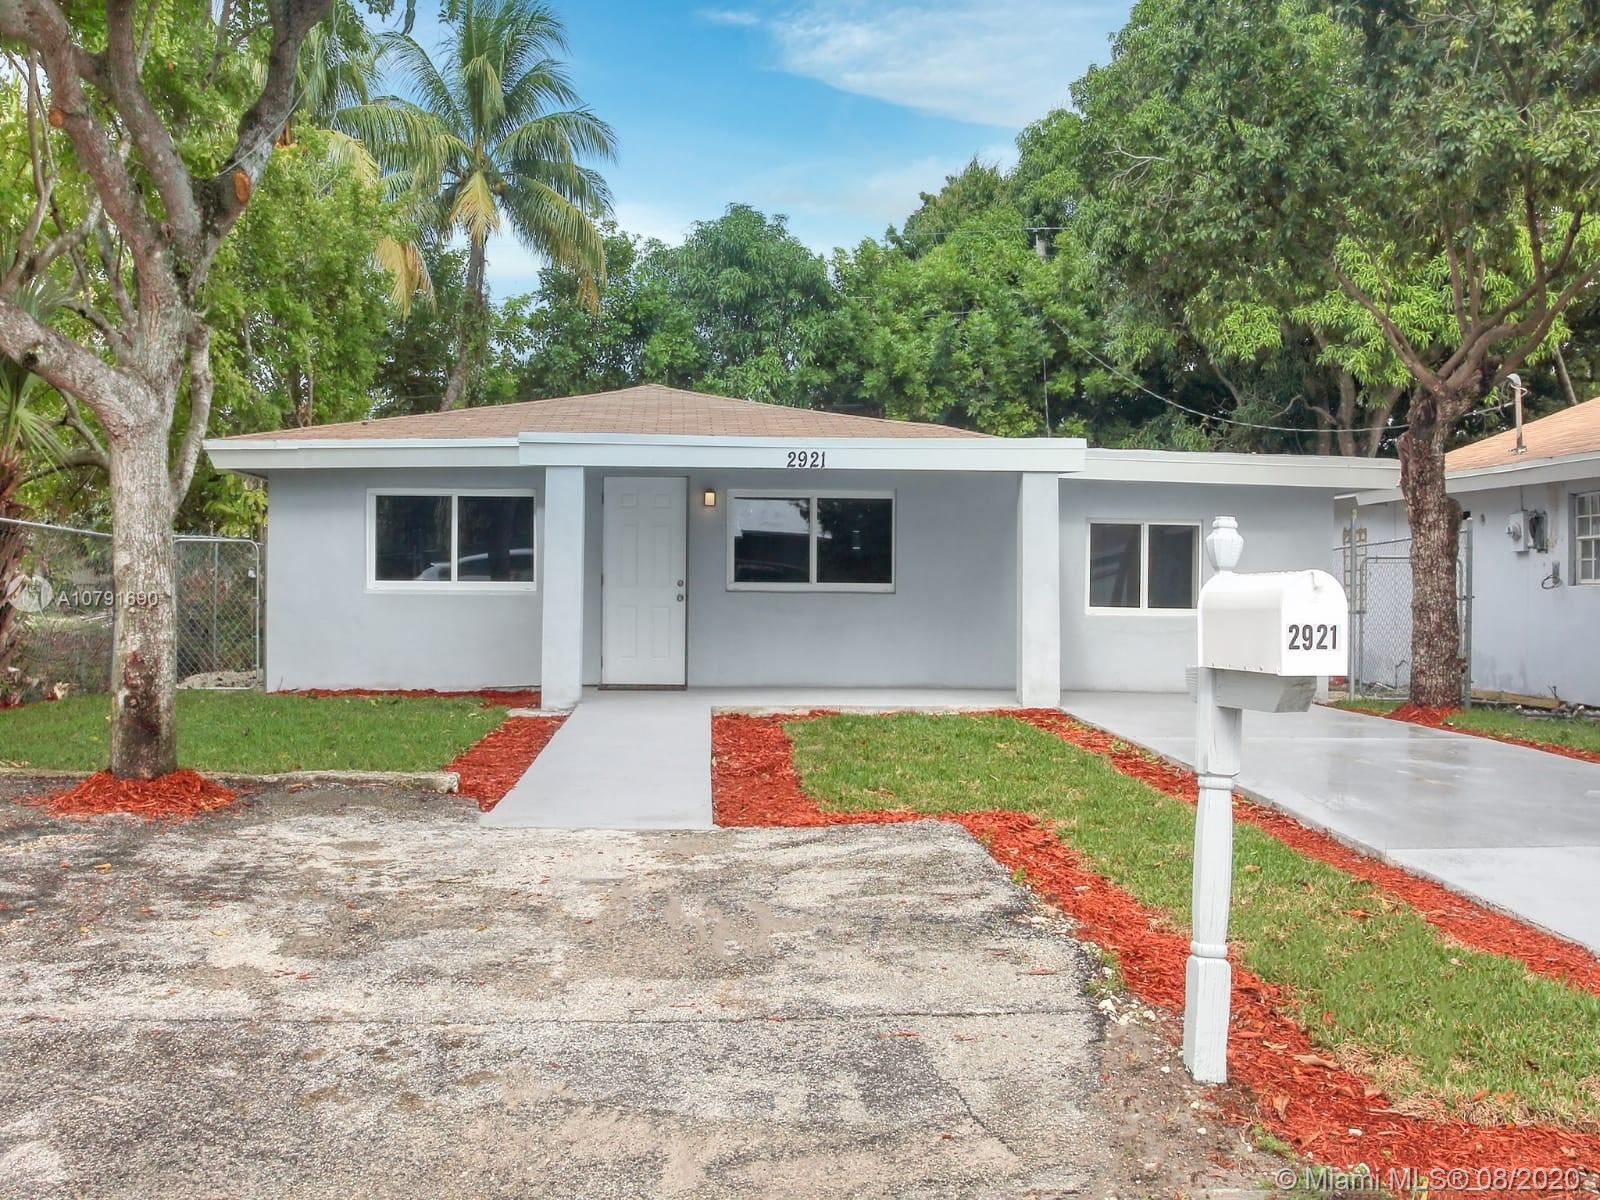 2921 NW 7th Ct, Fort Lauderdale, FL 33311 - #: A10791690